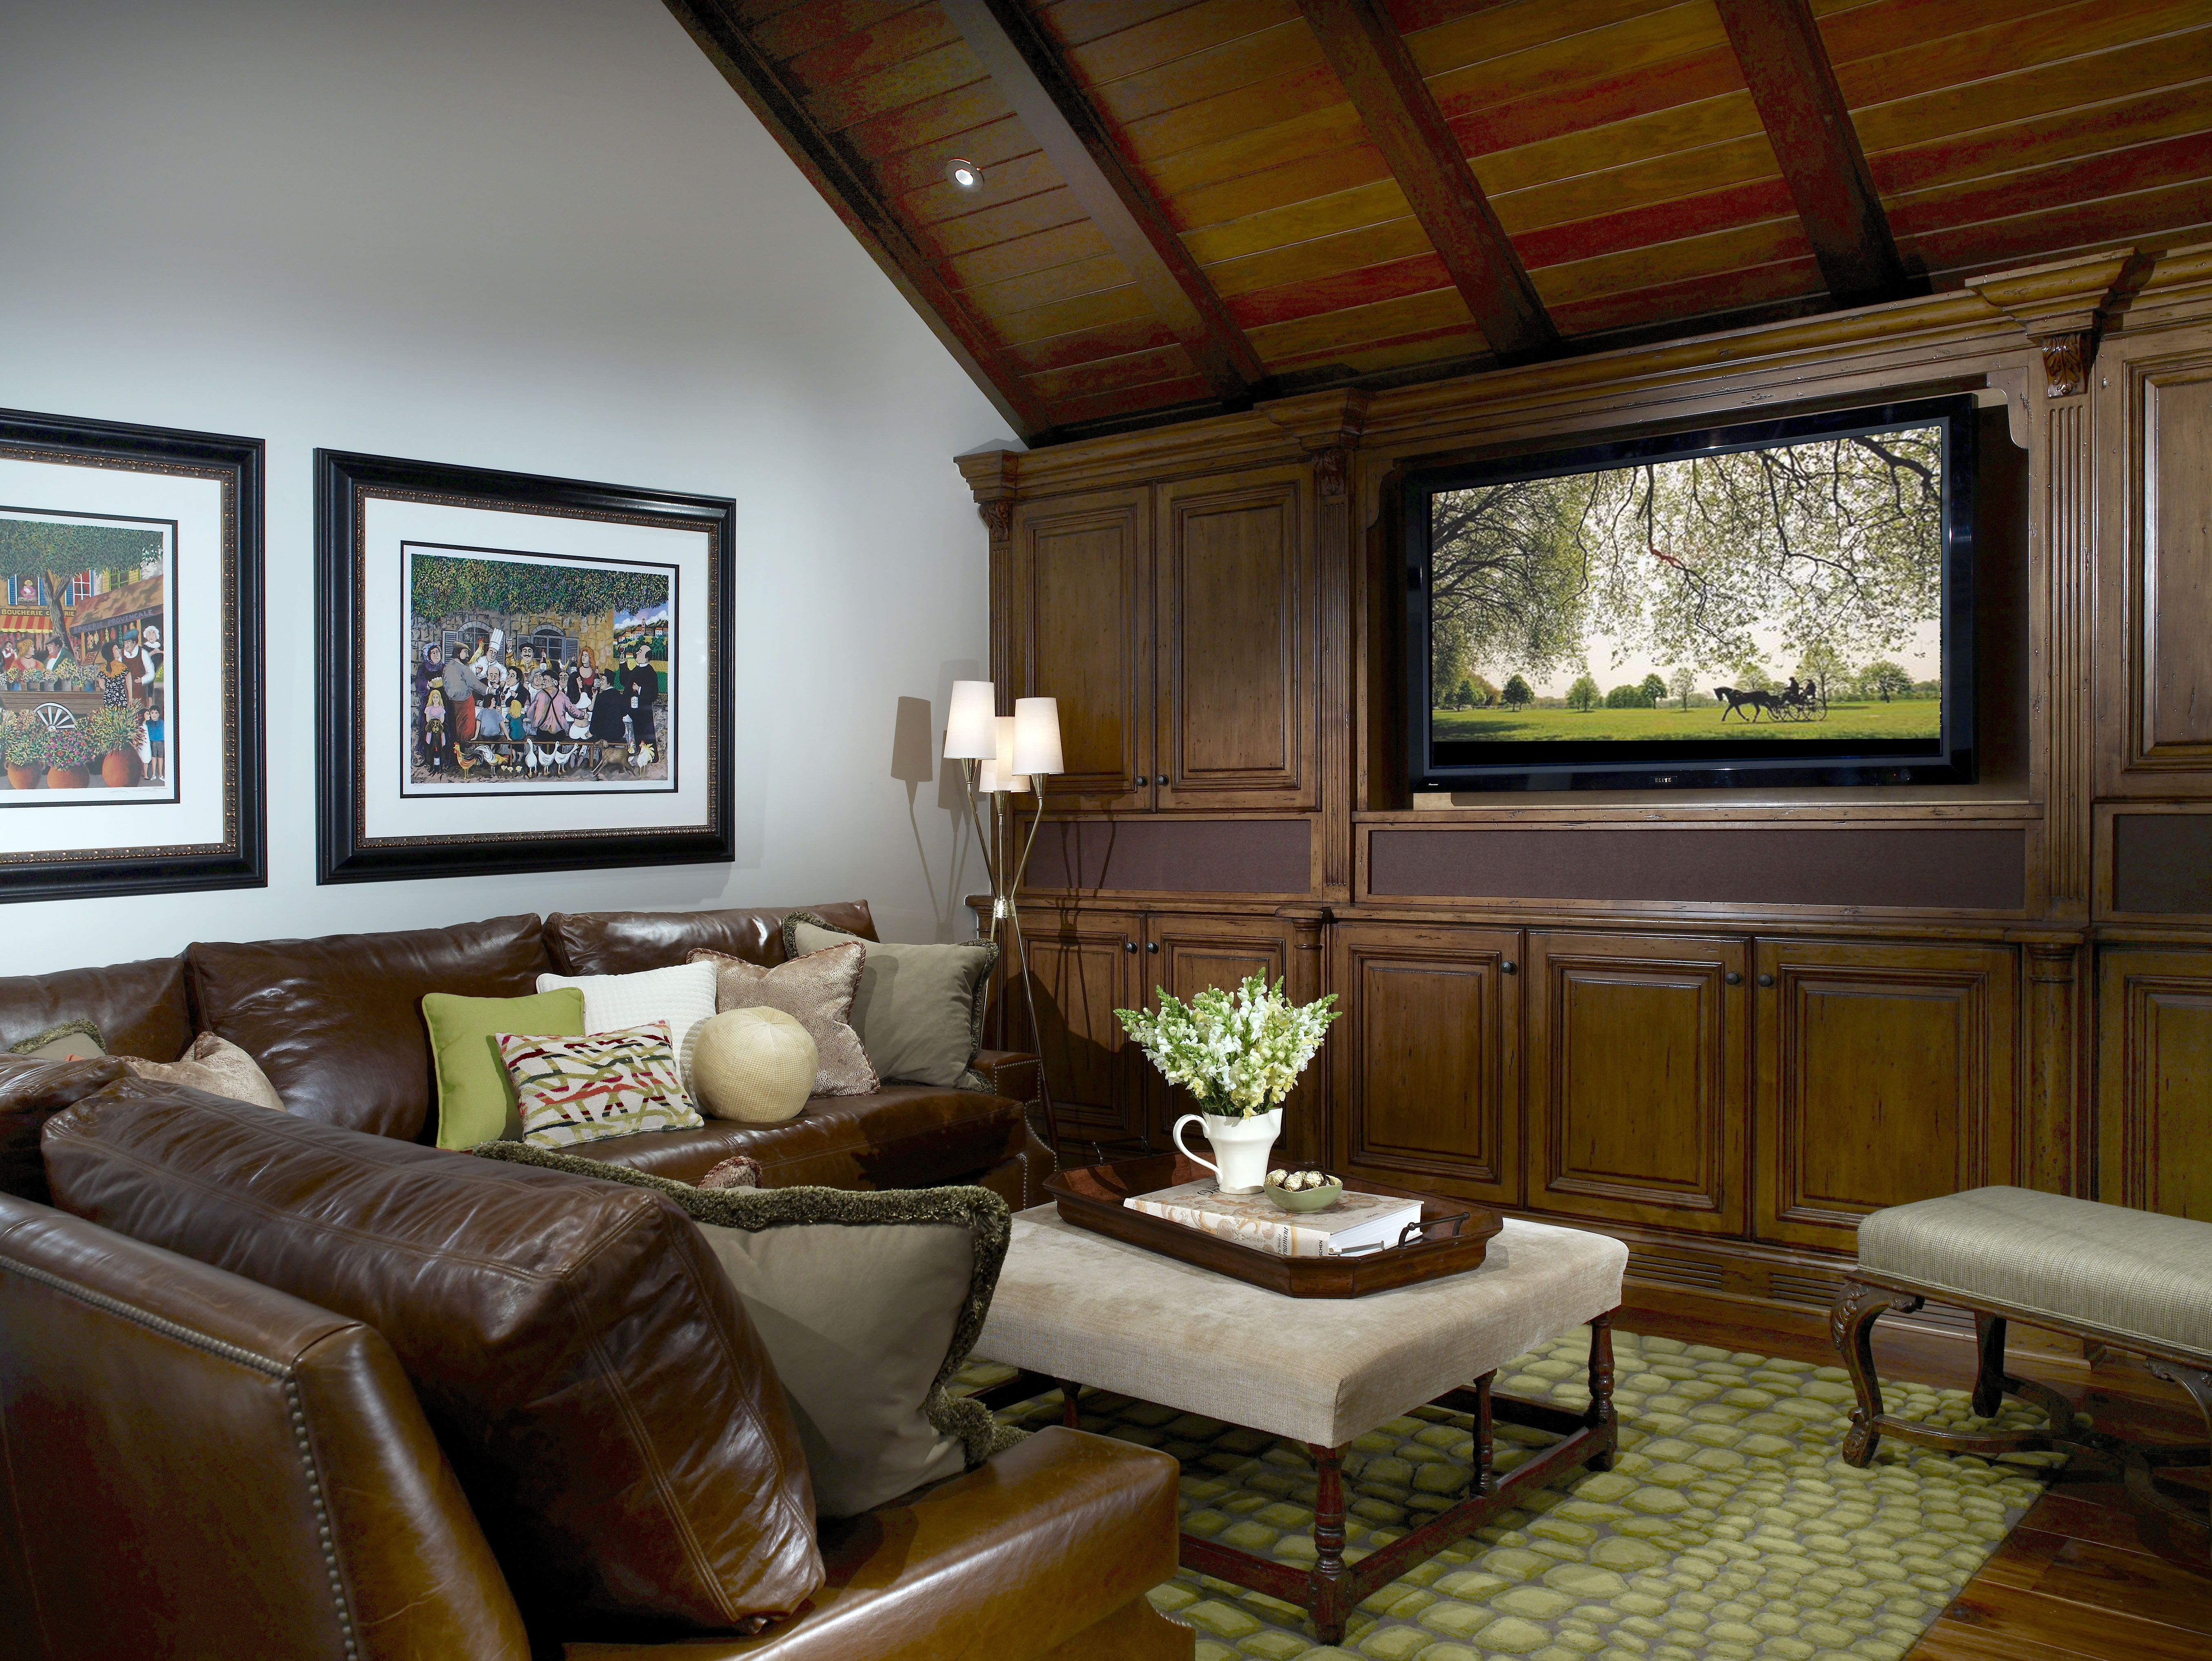 Designed with Sunday football in mind, this family friendly media room hosts a myriad of neighborhood events.